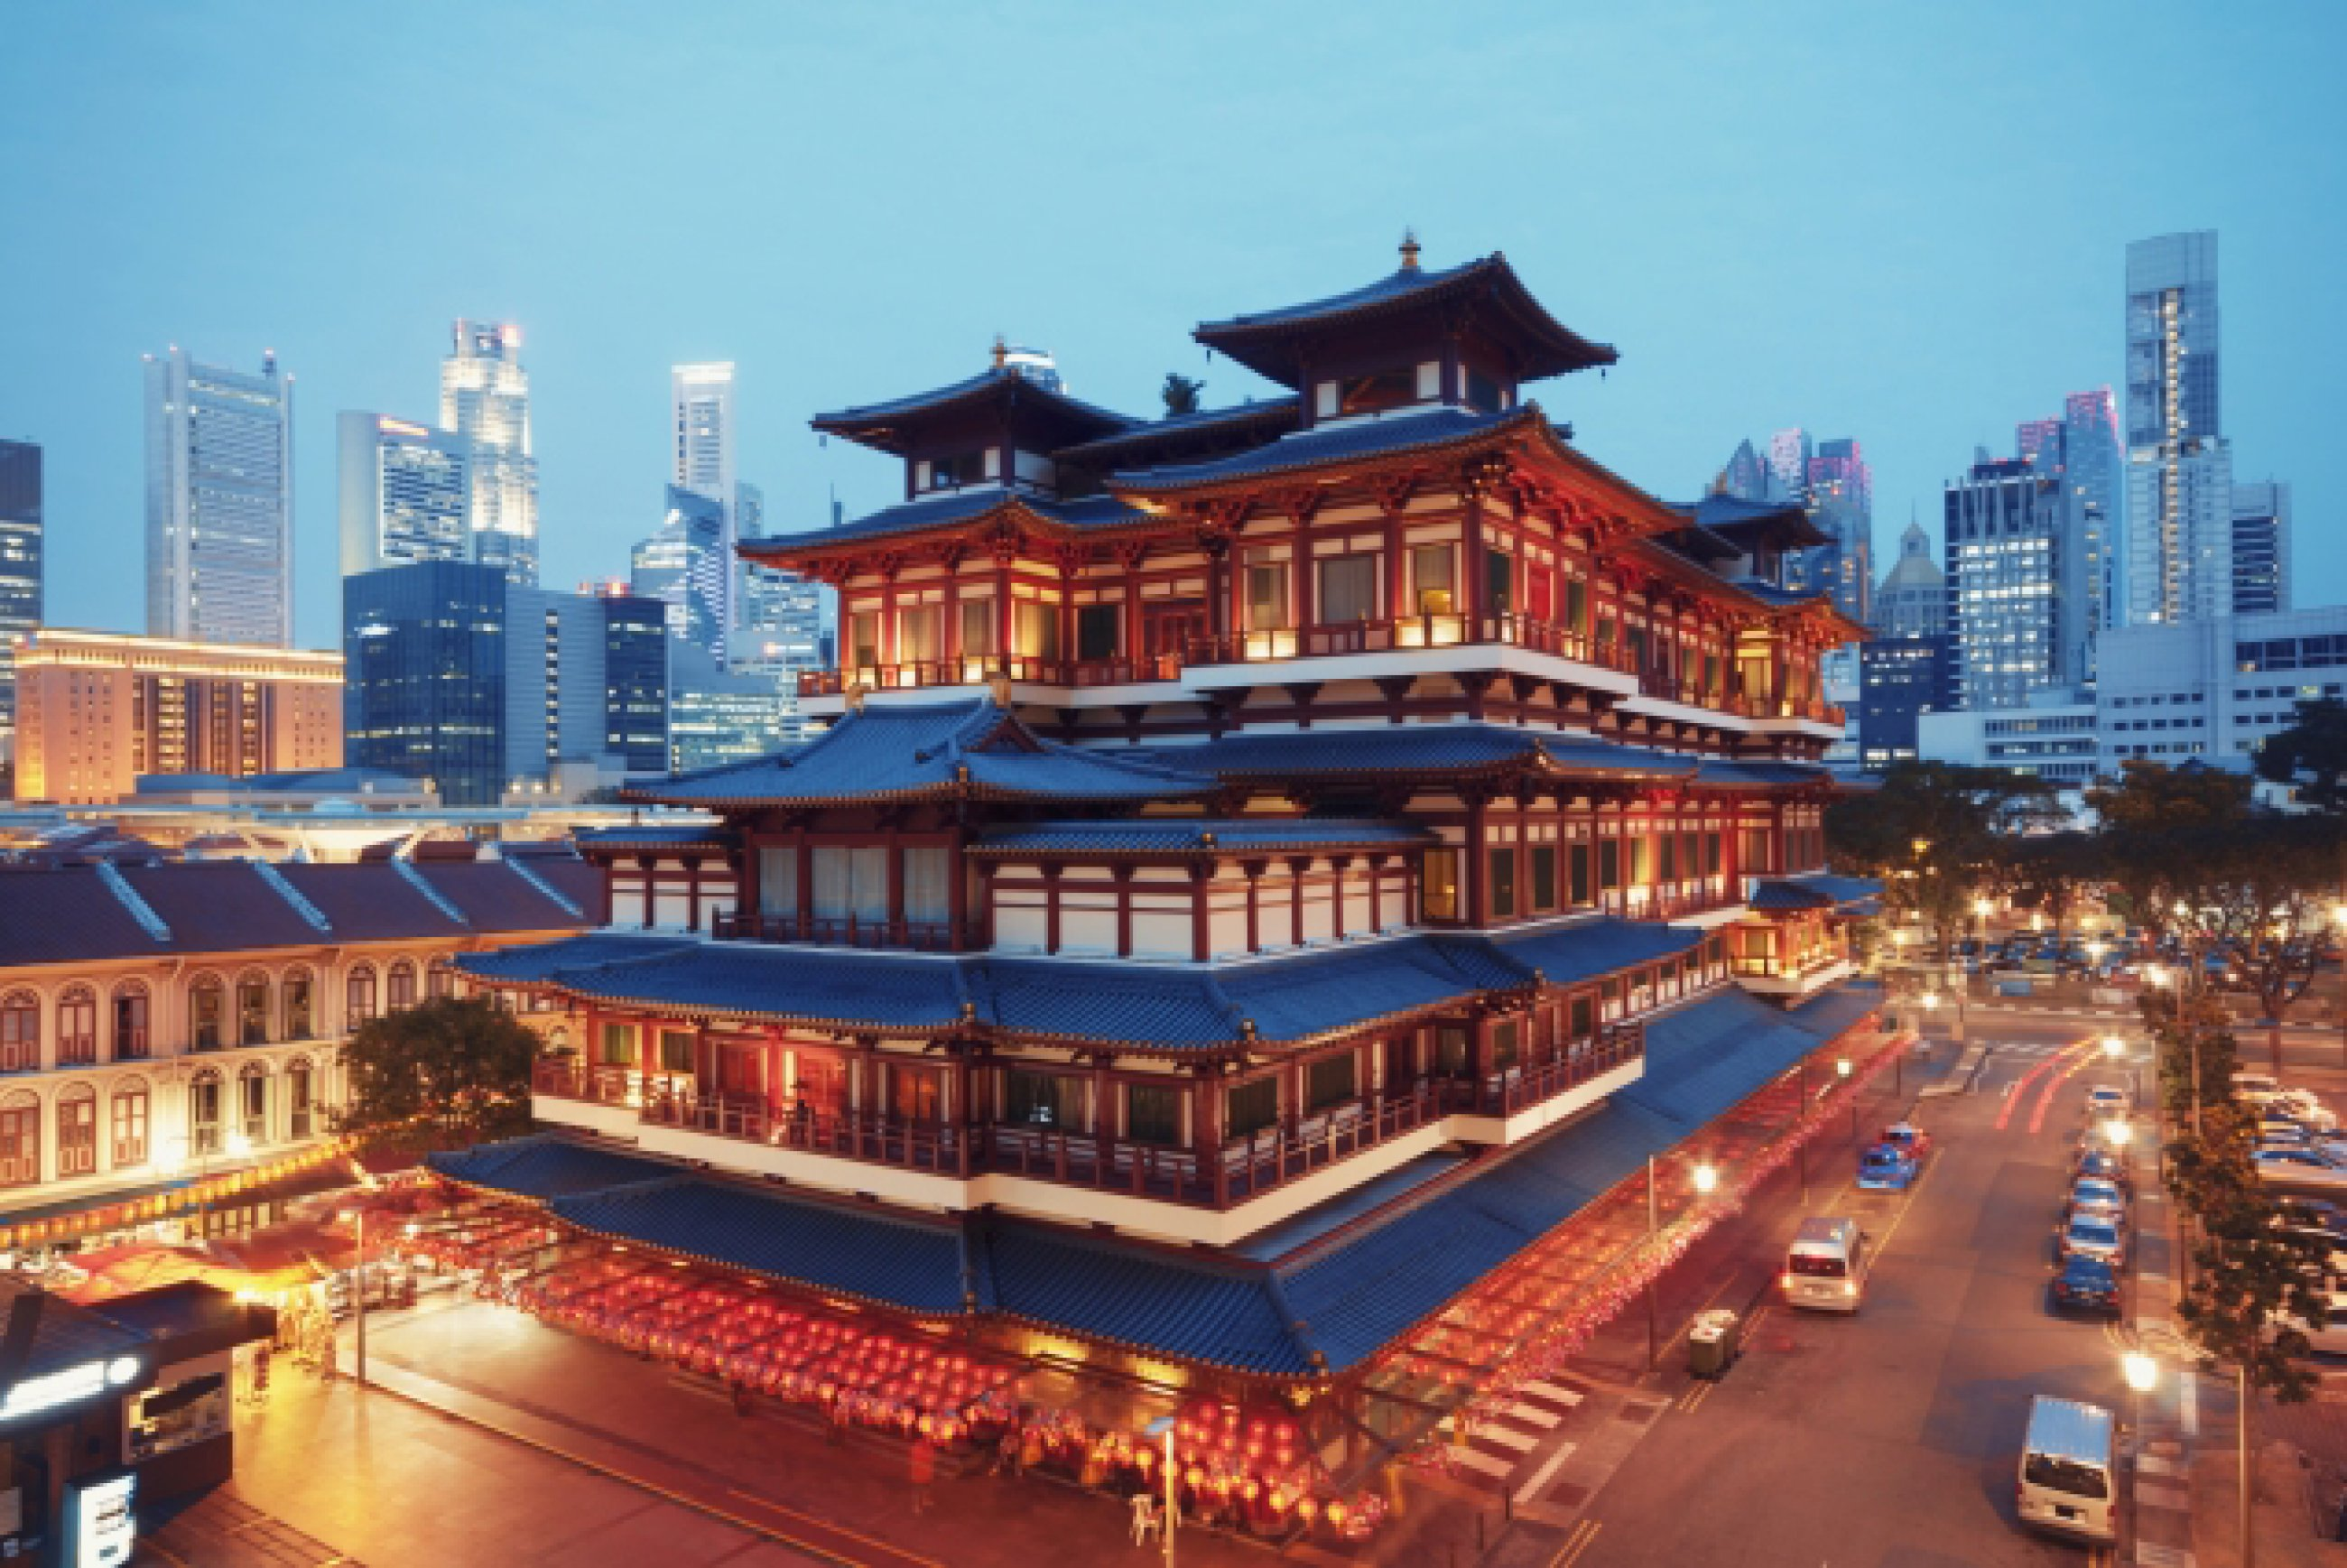 https://bubo.sk/uploads/galleries/8377/buddha-toothe-relic-temple-in-chinatown-in-singapore-with-singapore-s-business-district-in-the-background.jpg